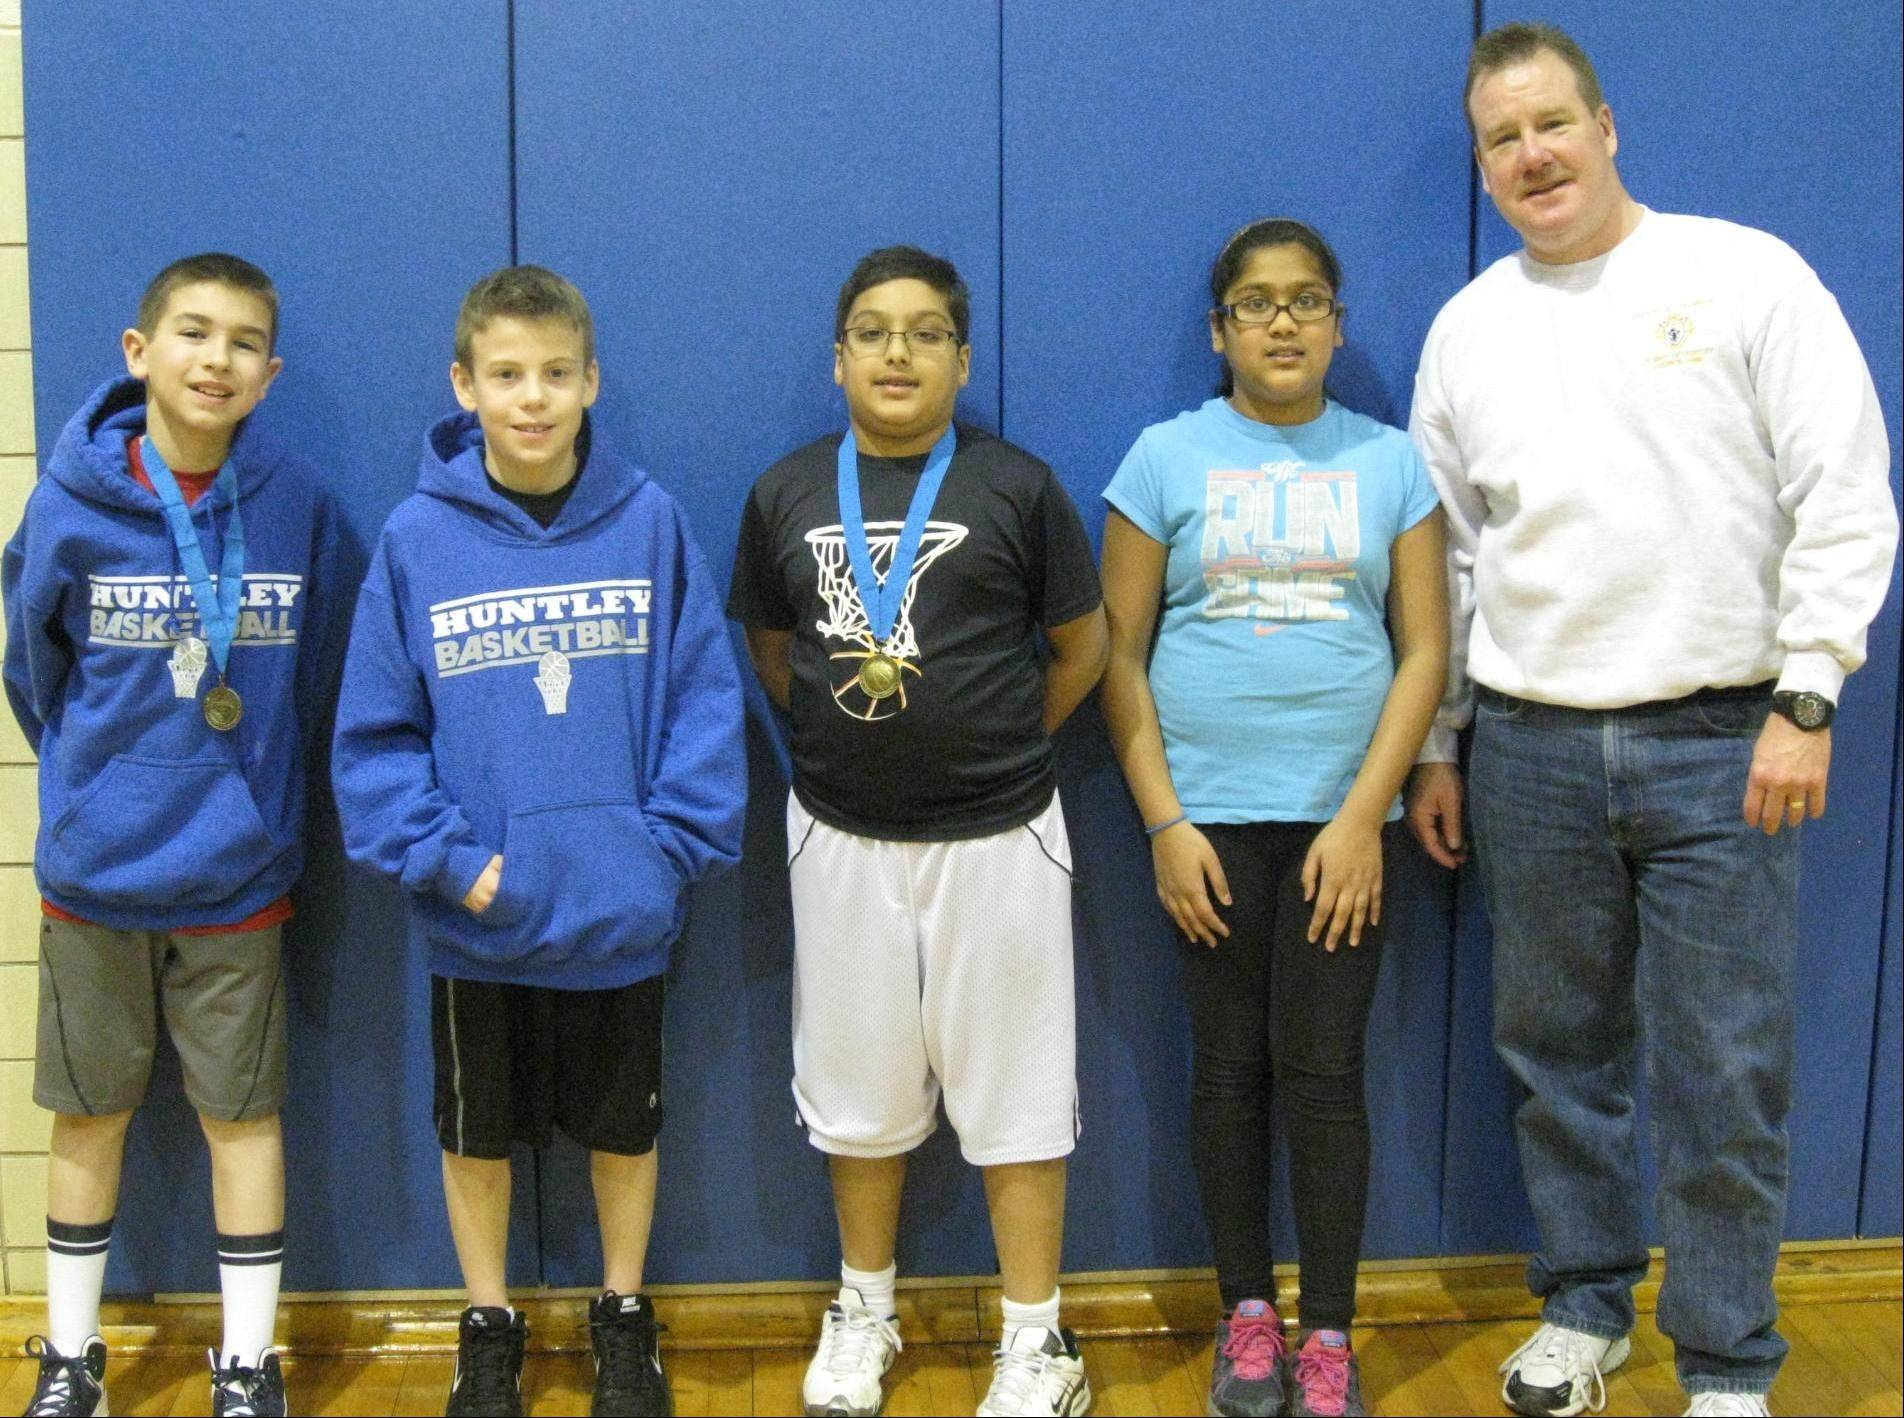 Zach Kriegler, left, Ryan Vrught, Ayush Agarwal and Radhika Agarwal, with Knight Jerry O'Sullivan, from the St. Mary of Huntley Knights of Columbus Council's Free Throw Championship attend the district competition held at St. Margaret Mary School on Feb. 16.